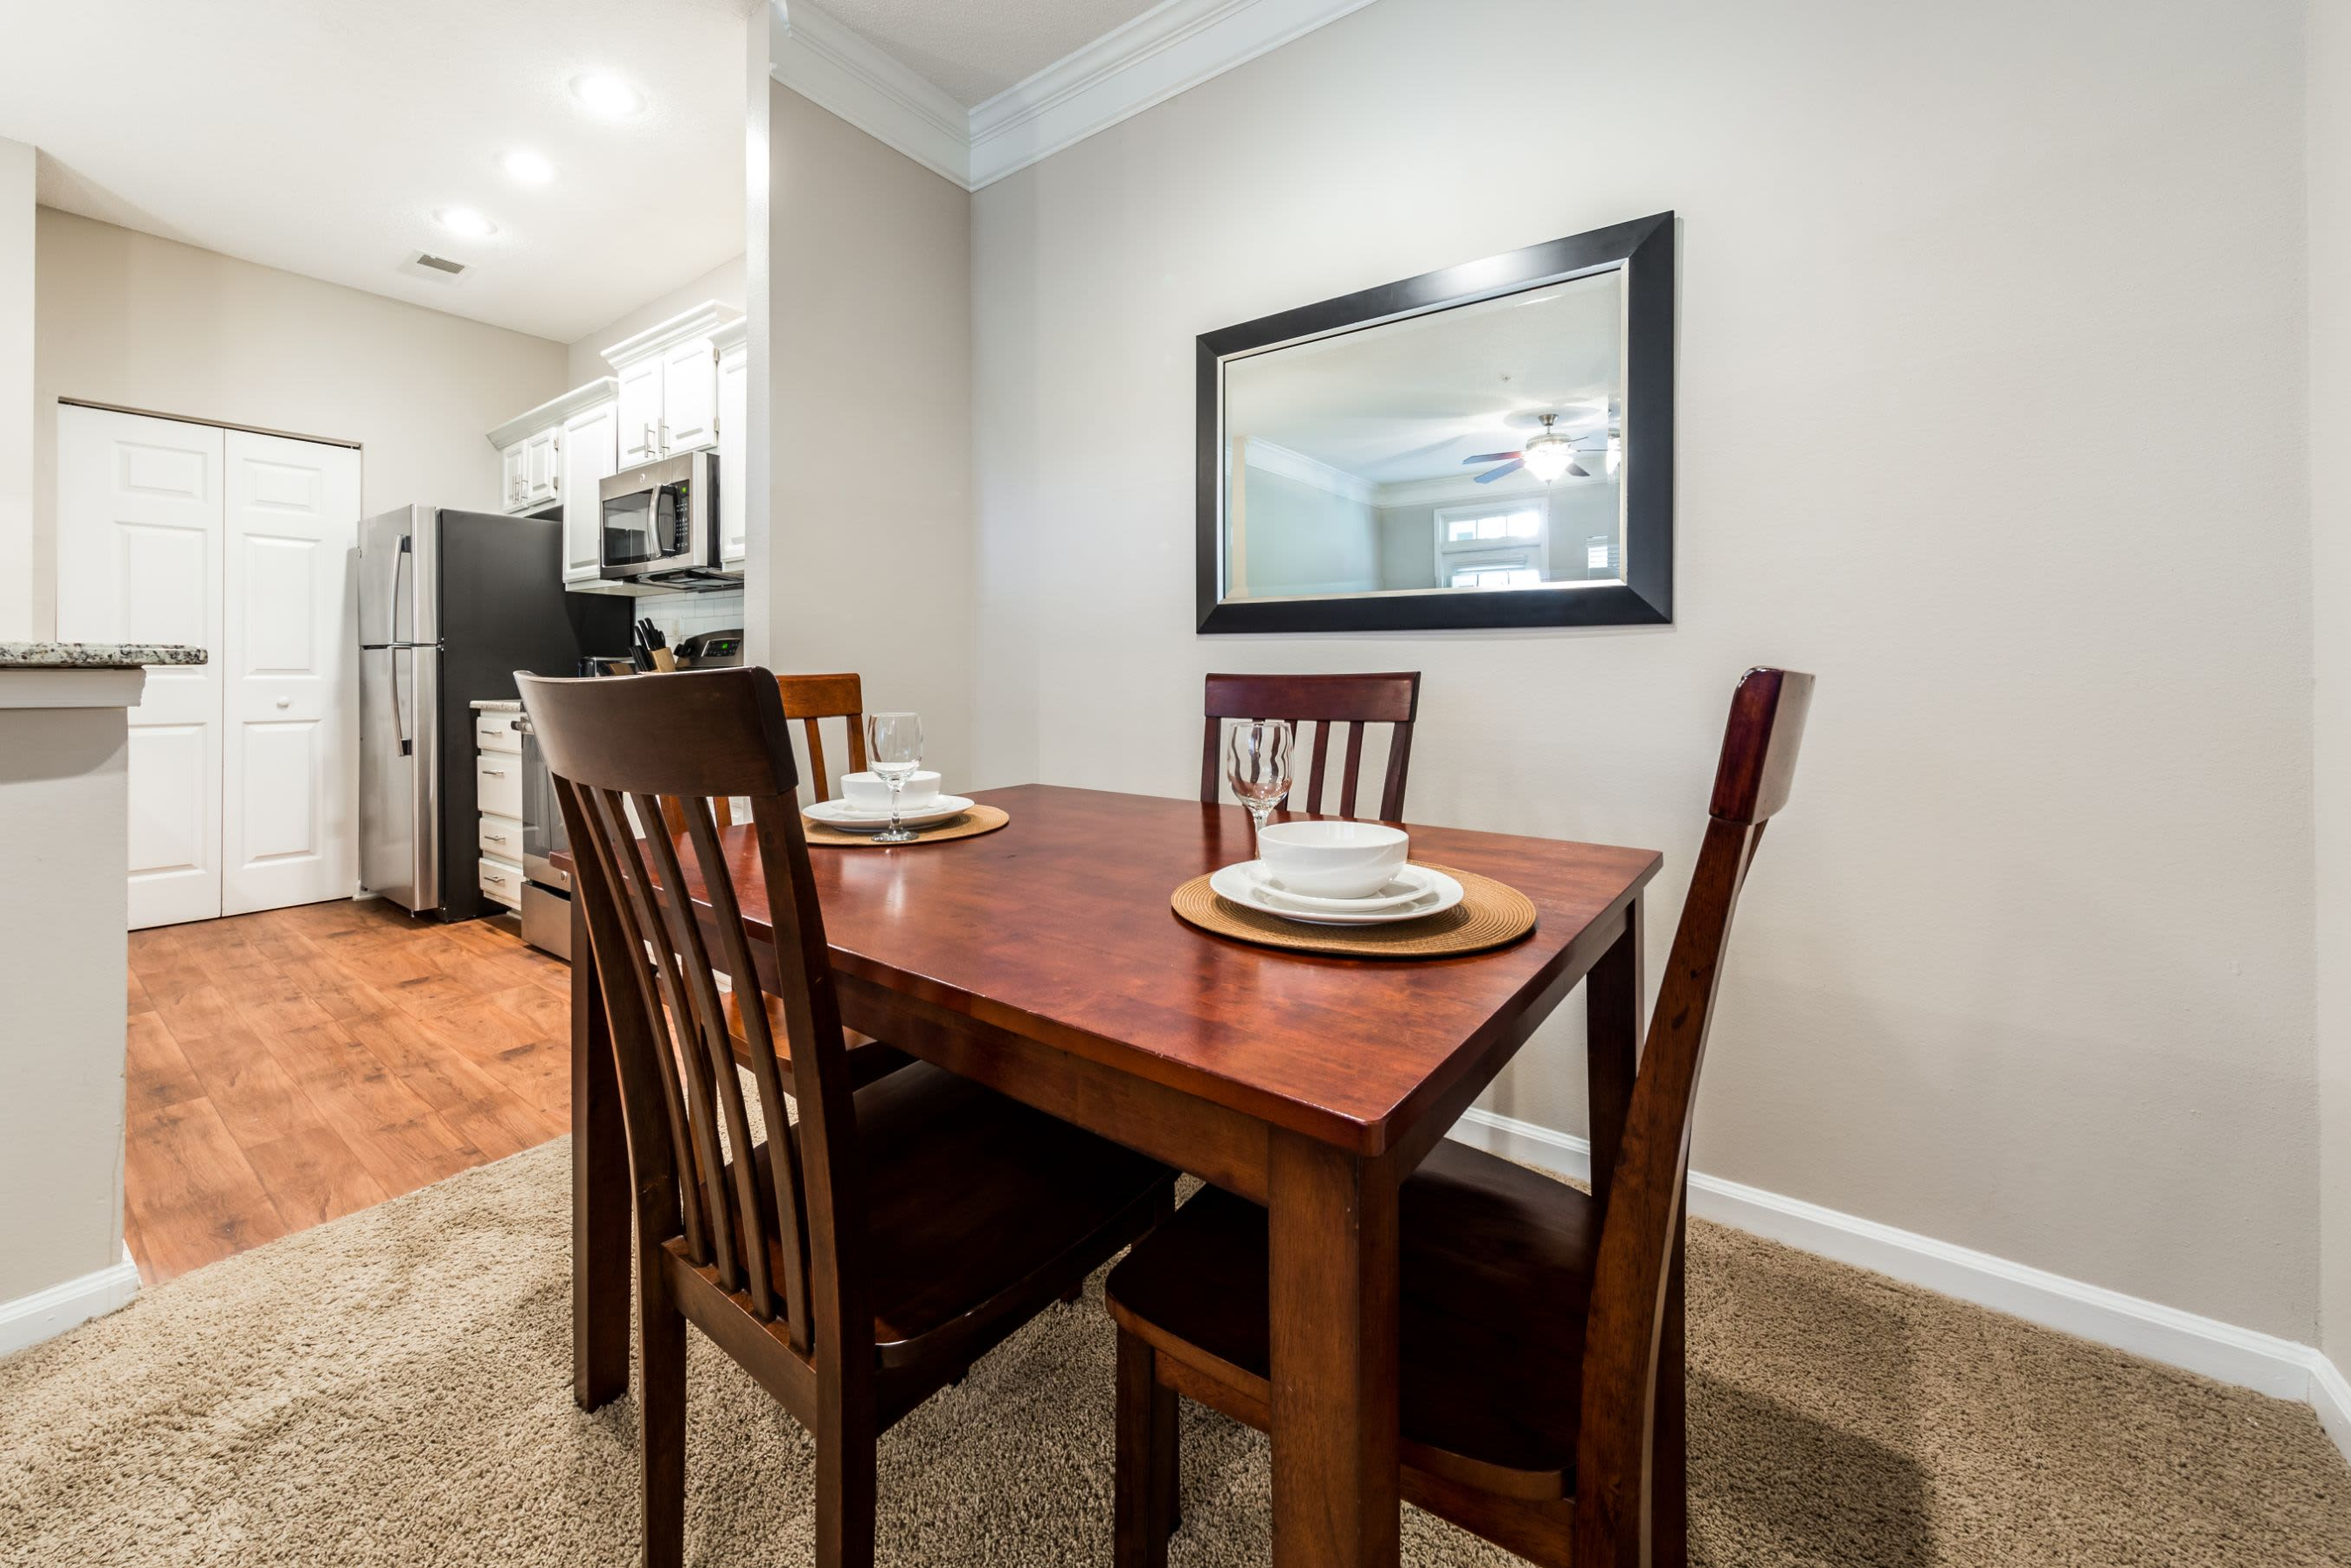 Dining area with carpeted floors at The Preserve at Ballantyne Commons in Charlotte, North Carolina